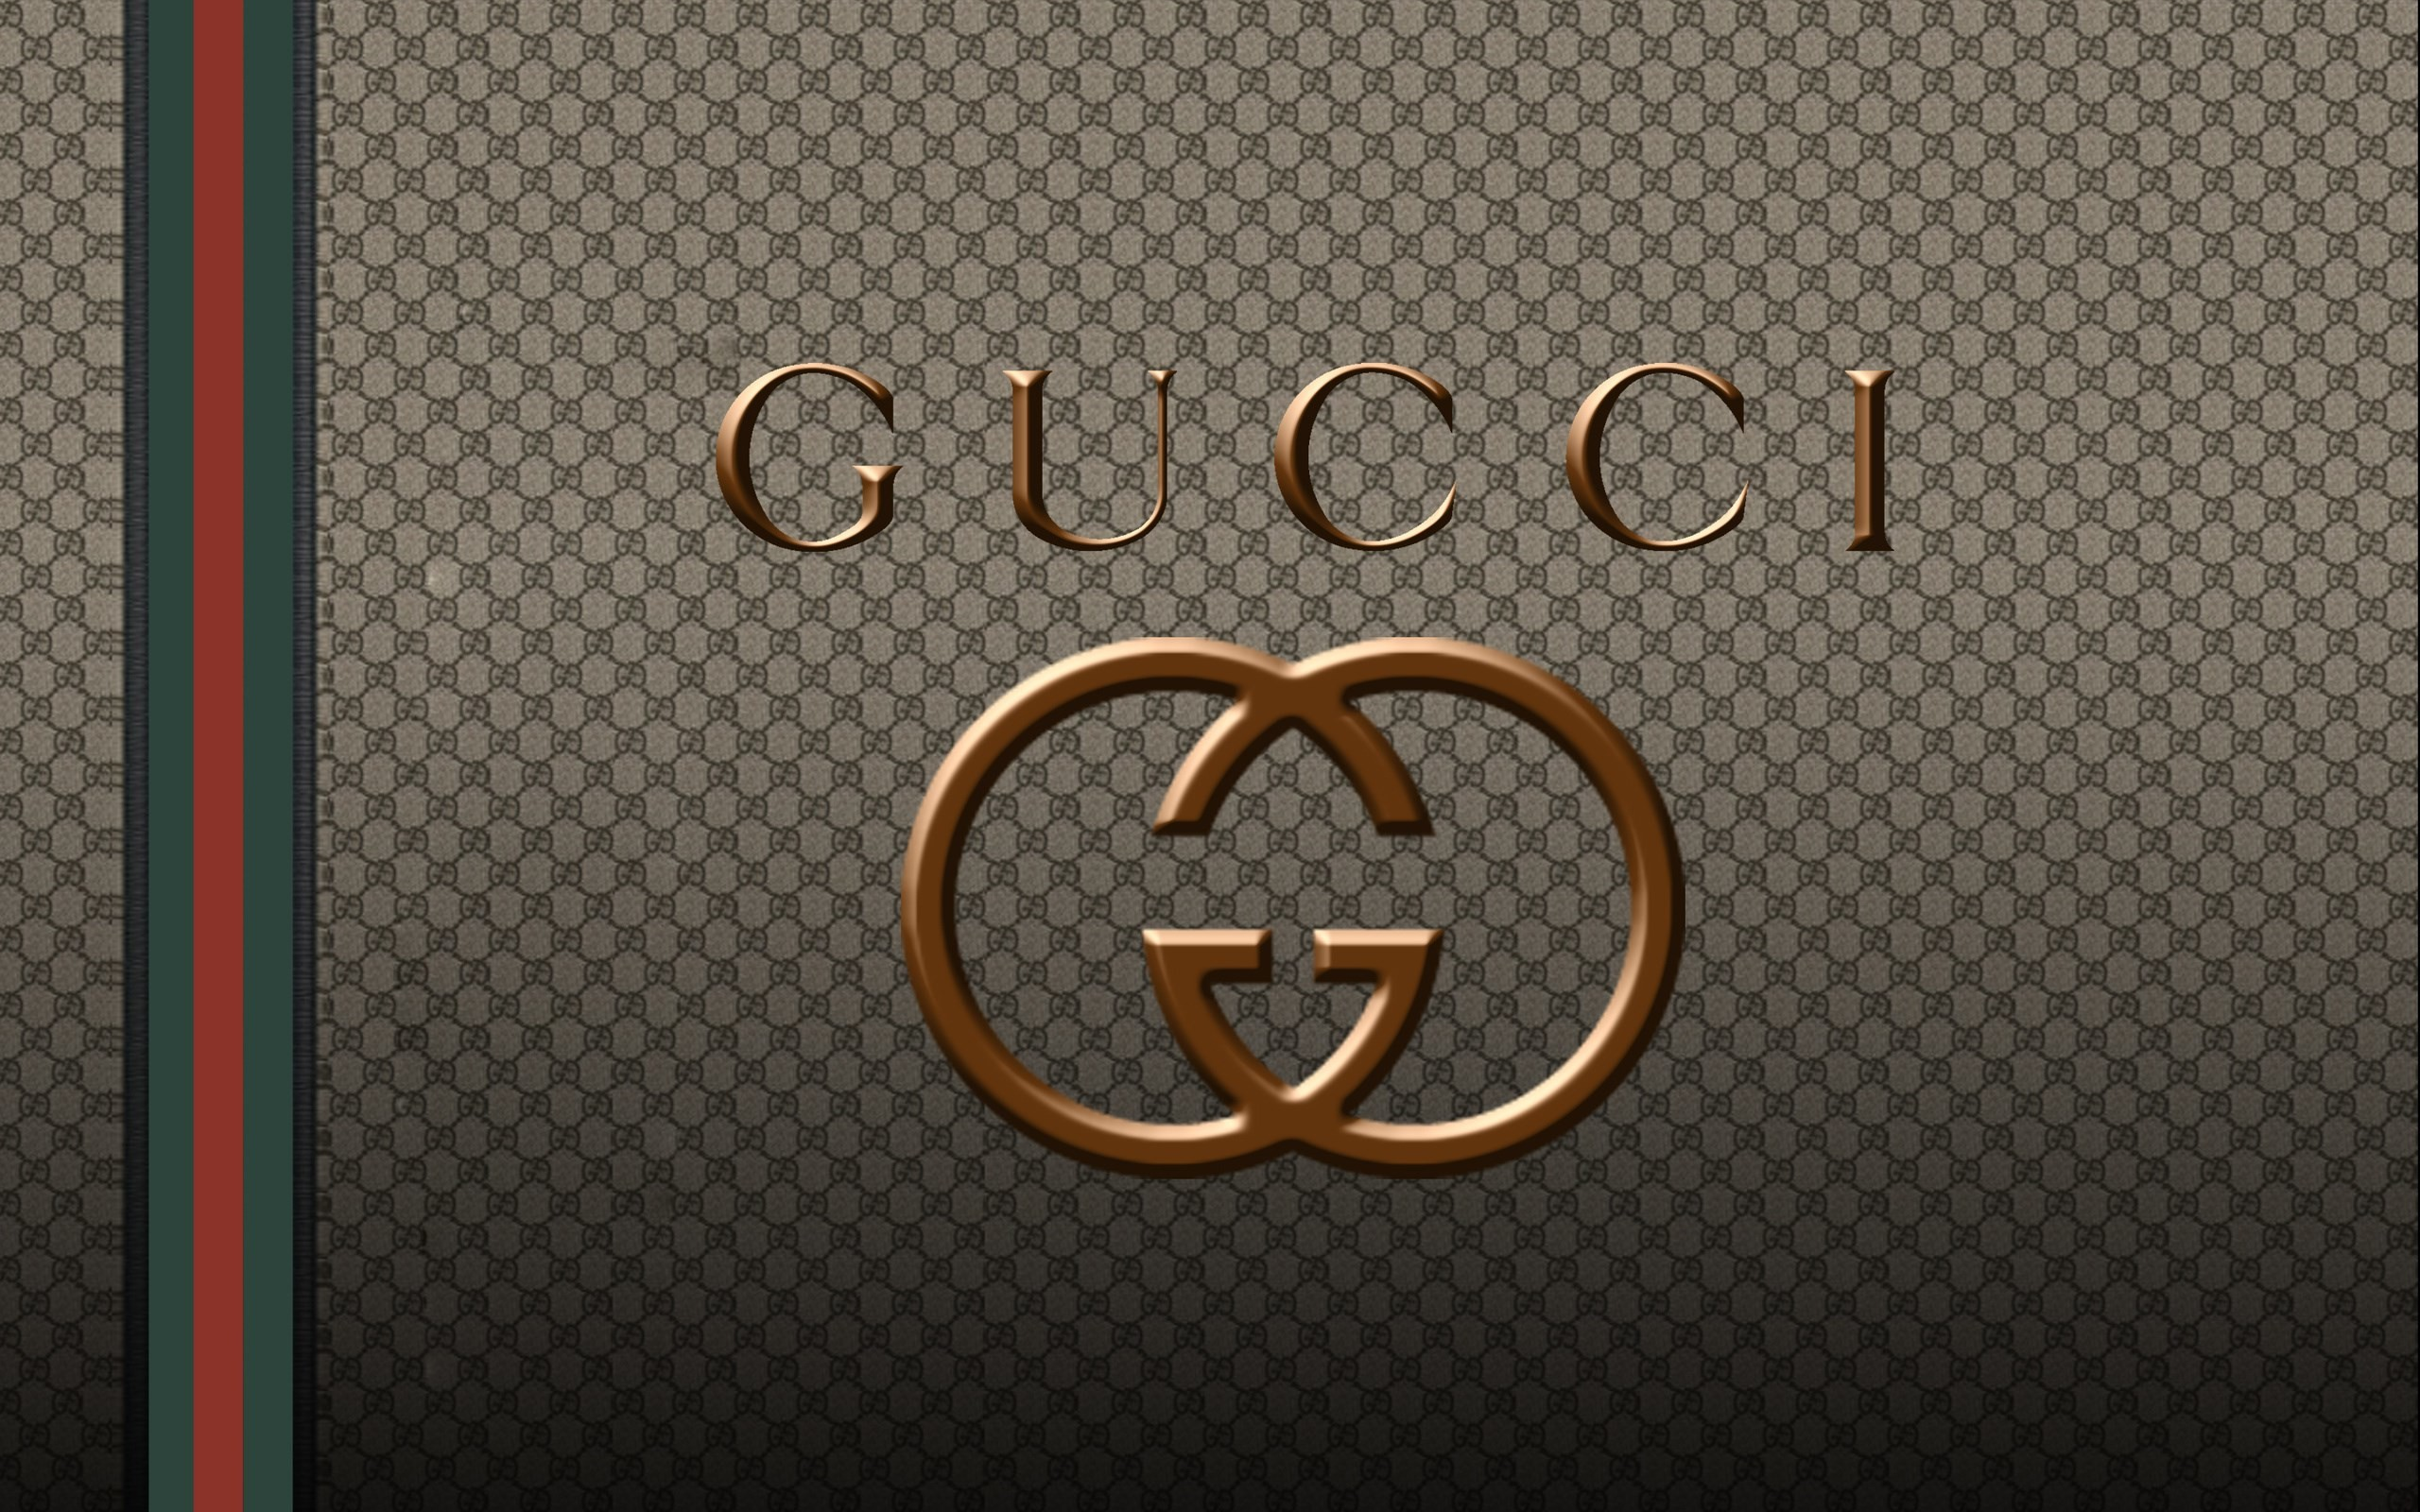 85 Gucci Logo Wallpapers on WallpaperPlay 2560x1600